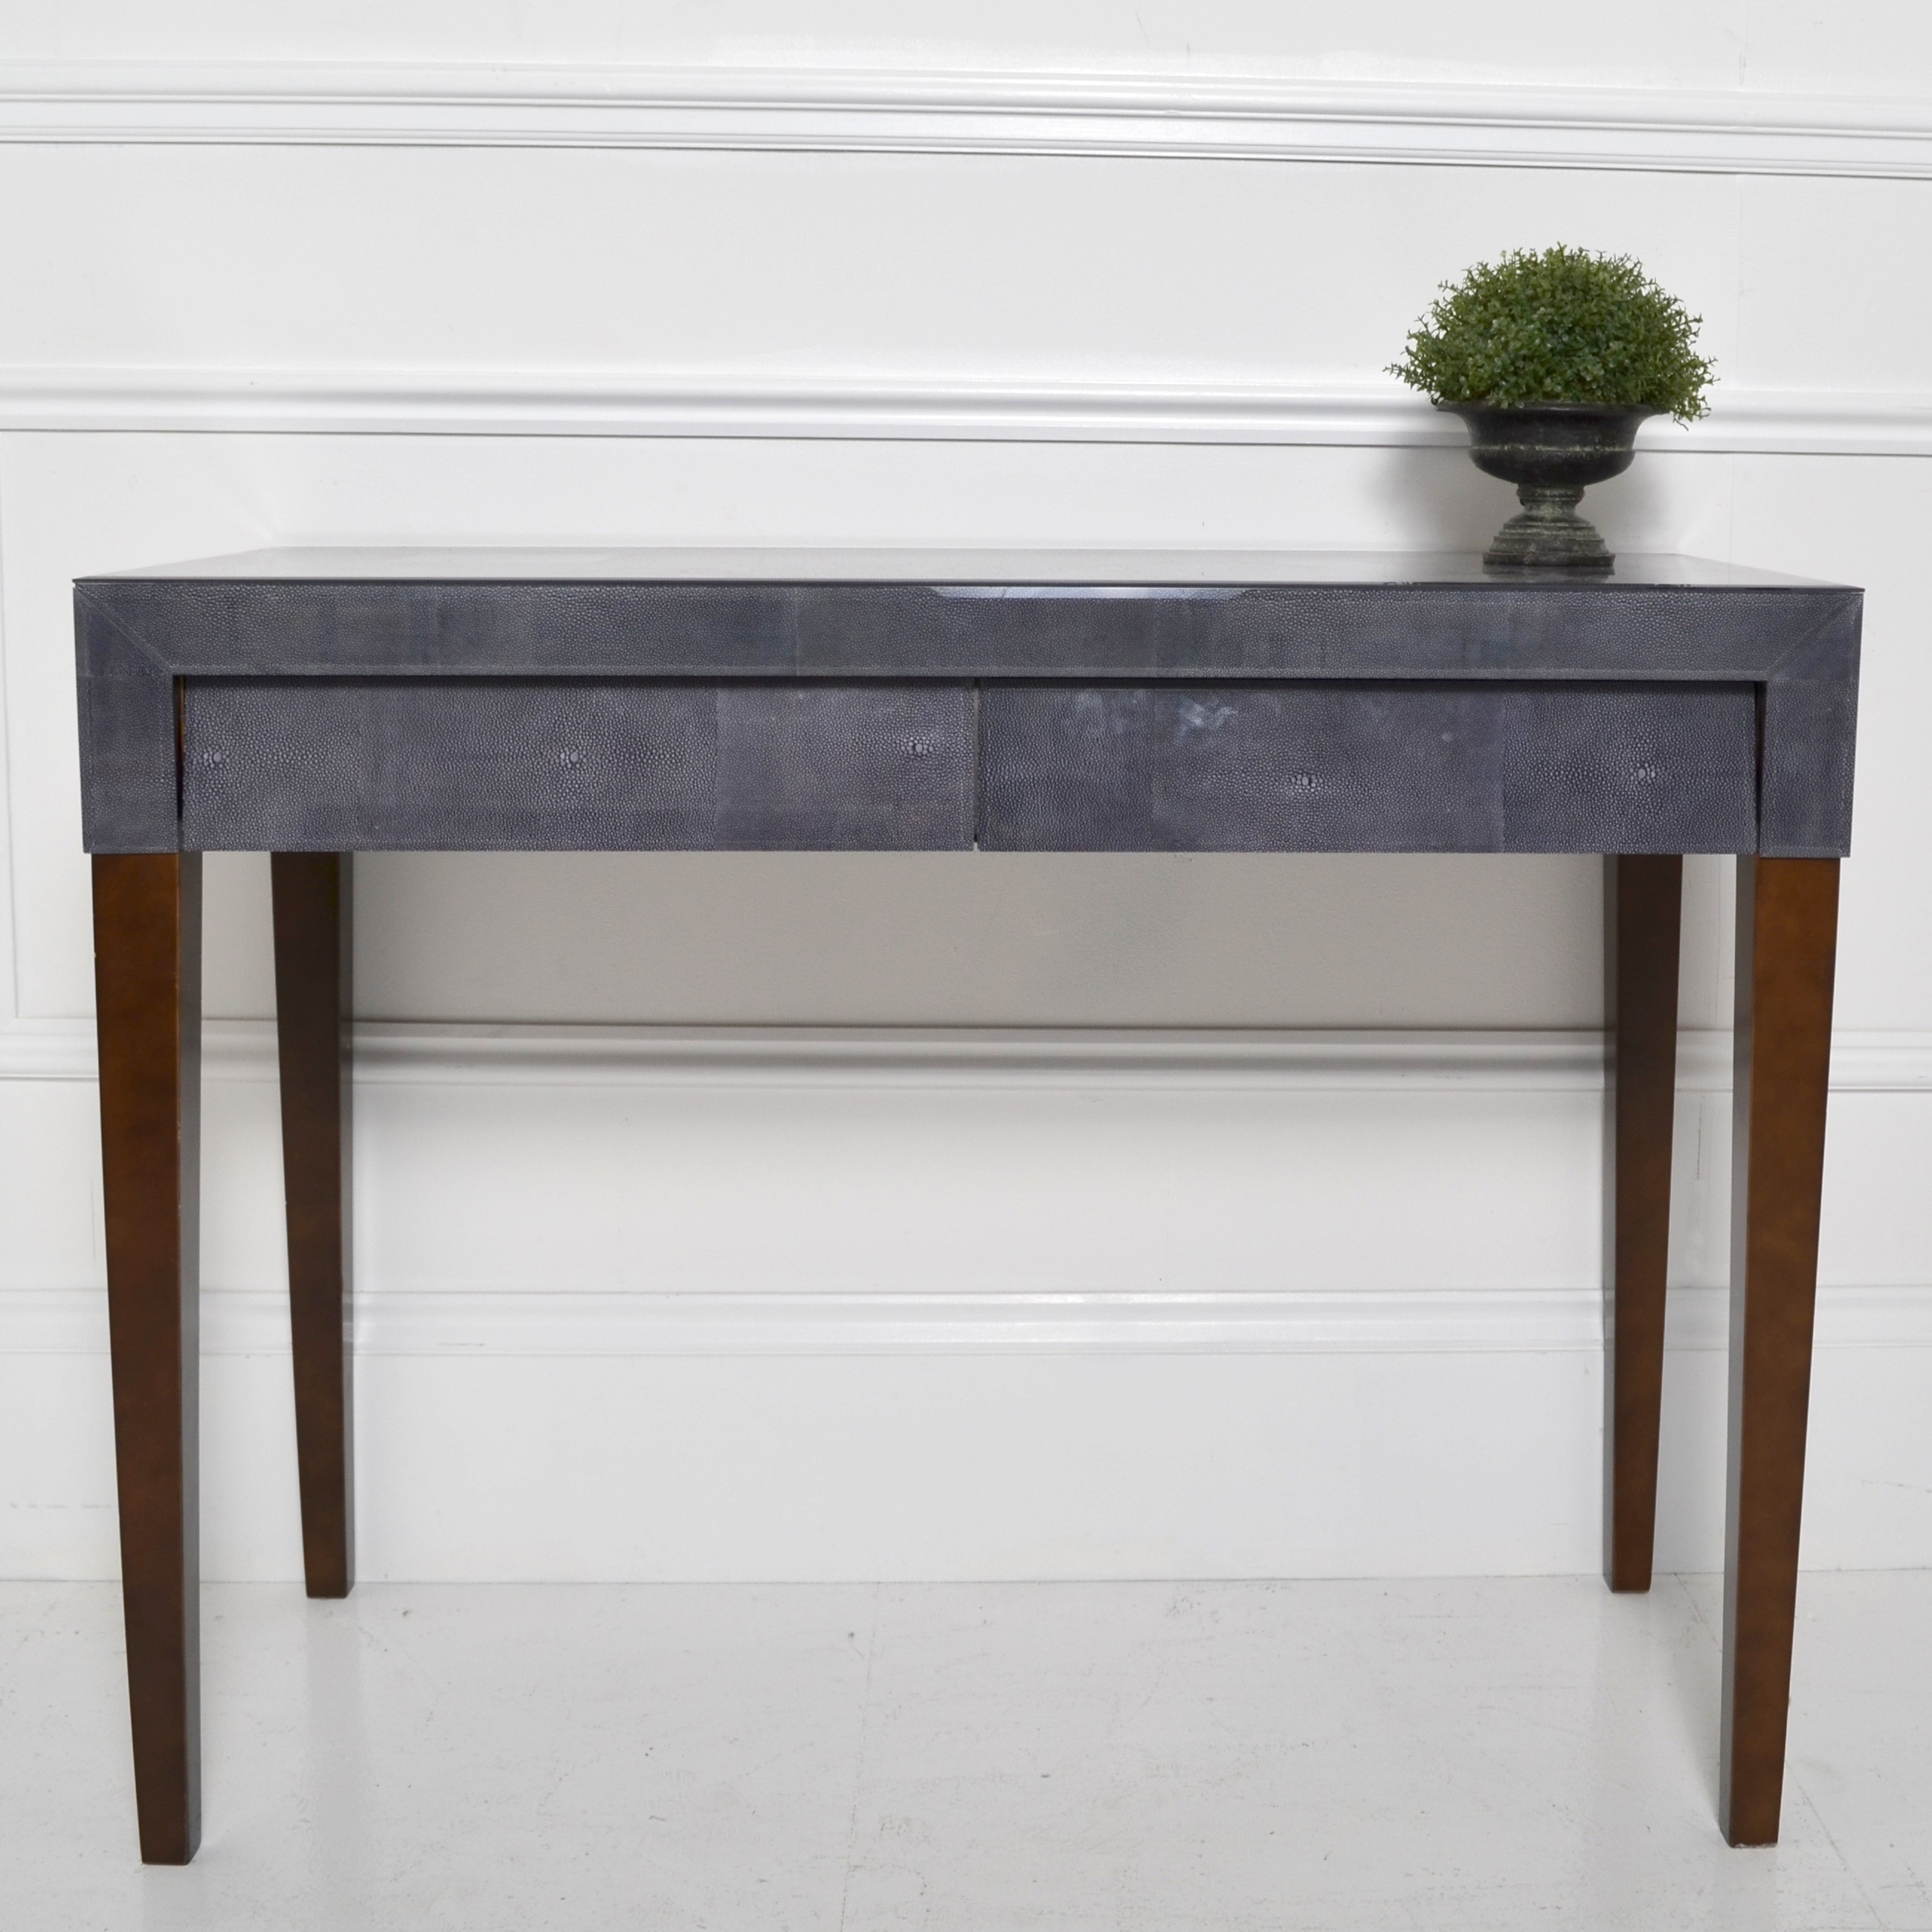 Dark Grey Shagreen Console Intended For Grey Shagreen Media Console Tables (View 3 of 30)